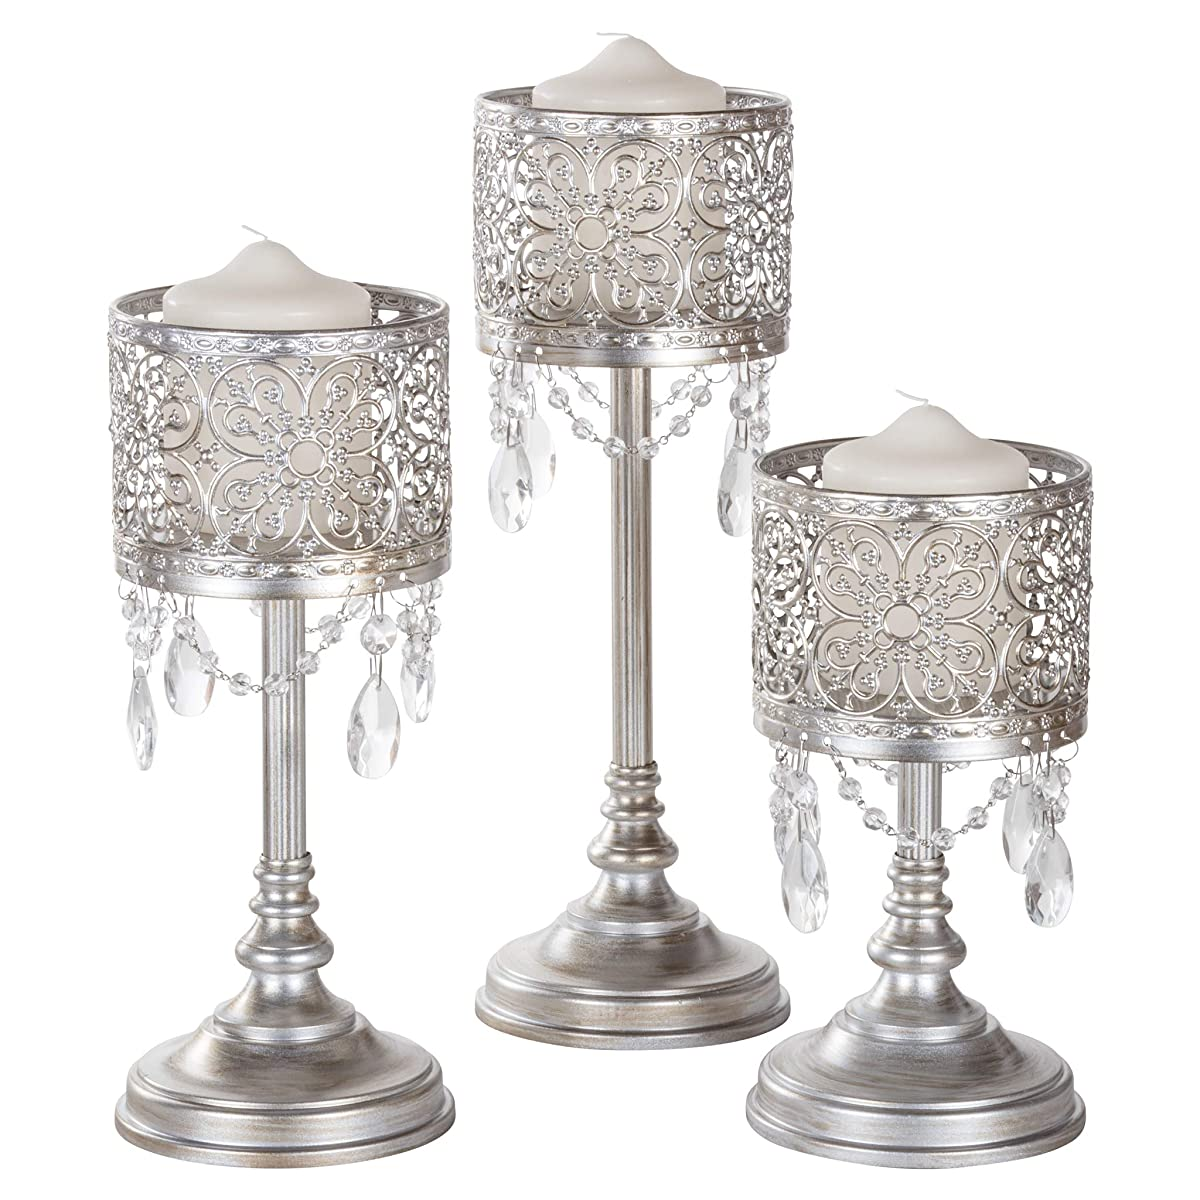 Amalfi Décor Victoria 3-Piece Antique Silver Hurricane Candle Holder Set with Crystals Metal Pillar Wedding Accent Stand